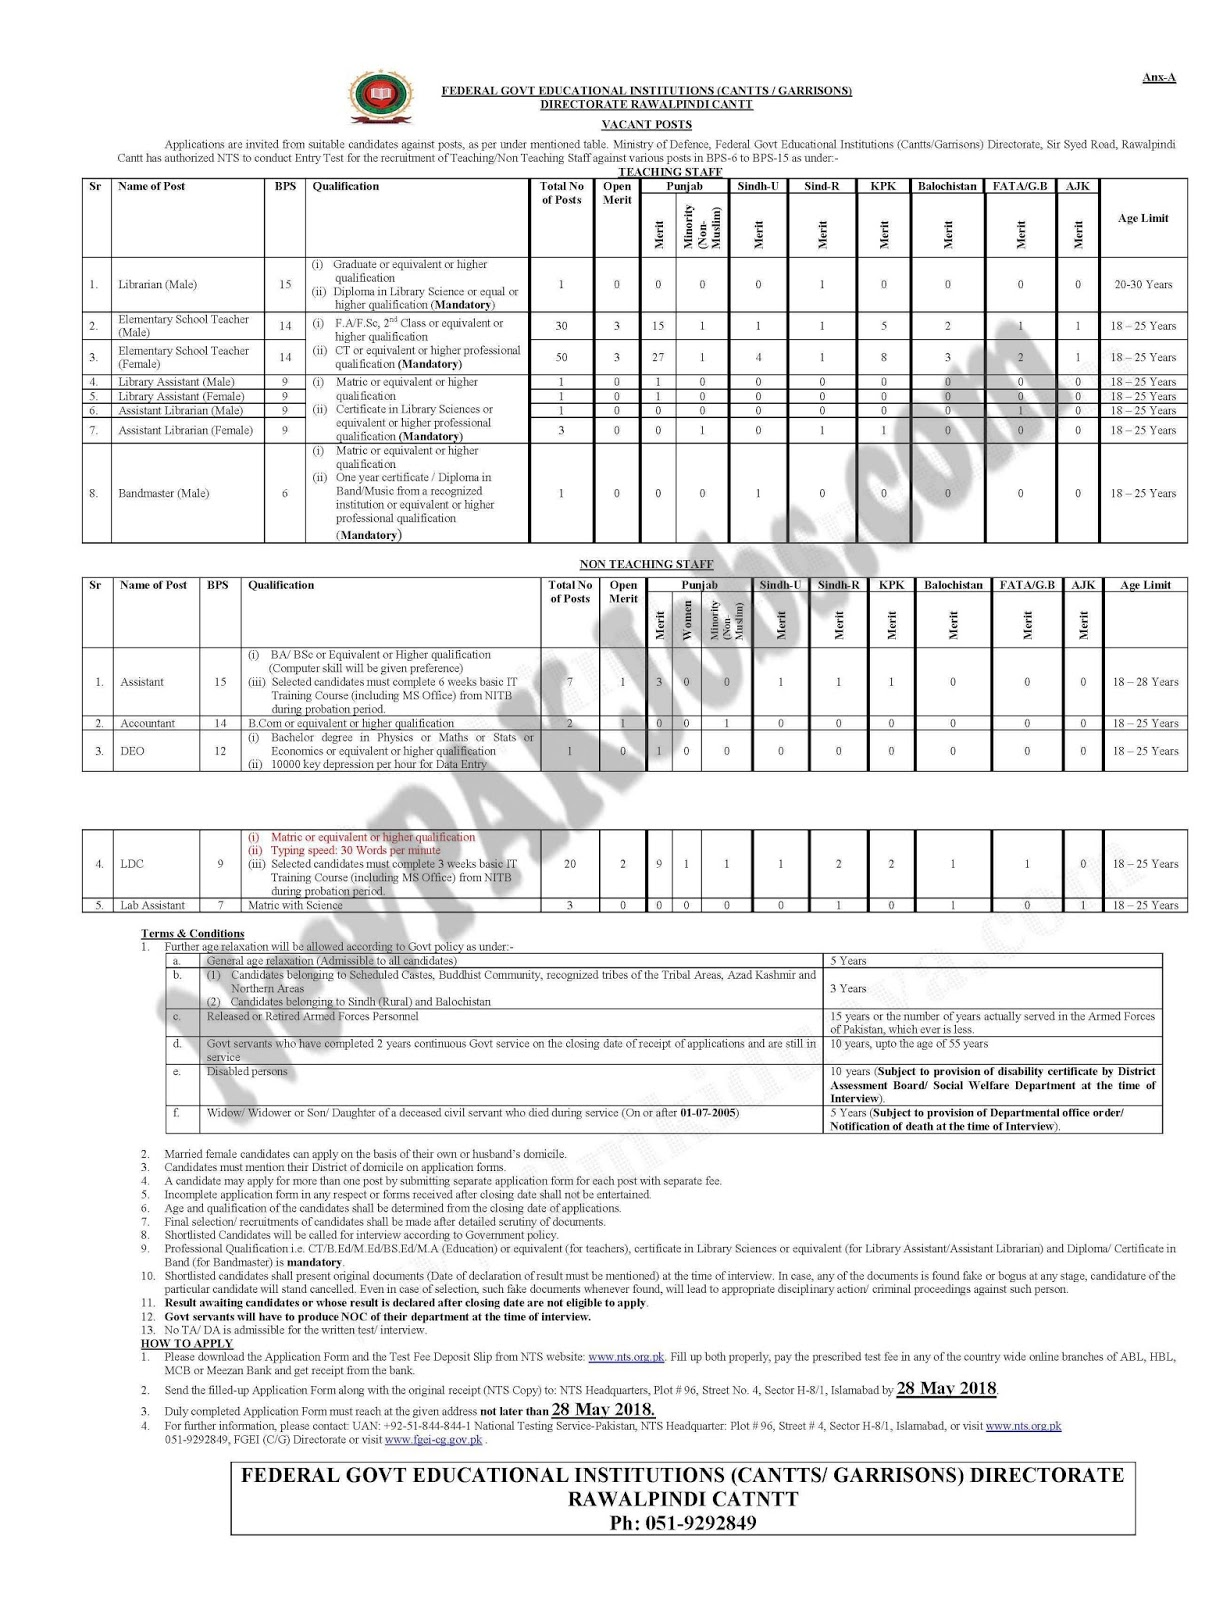 nts-jobs-in-federal-govt-educational